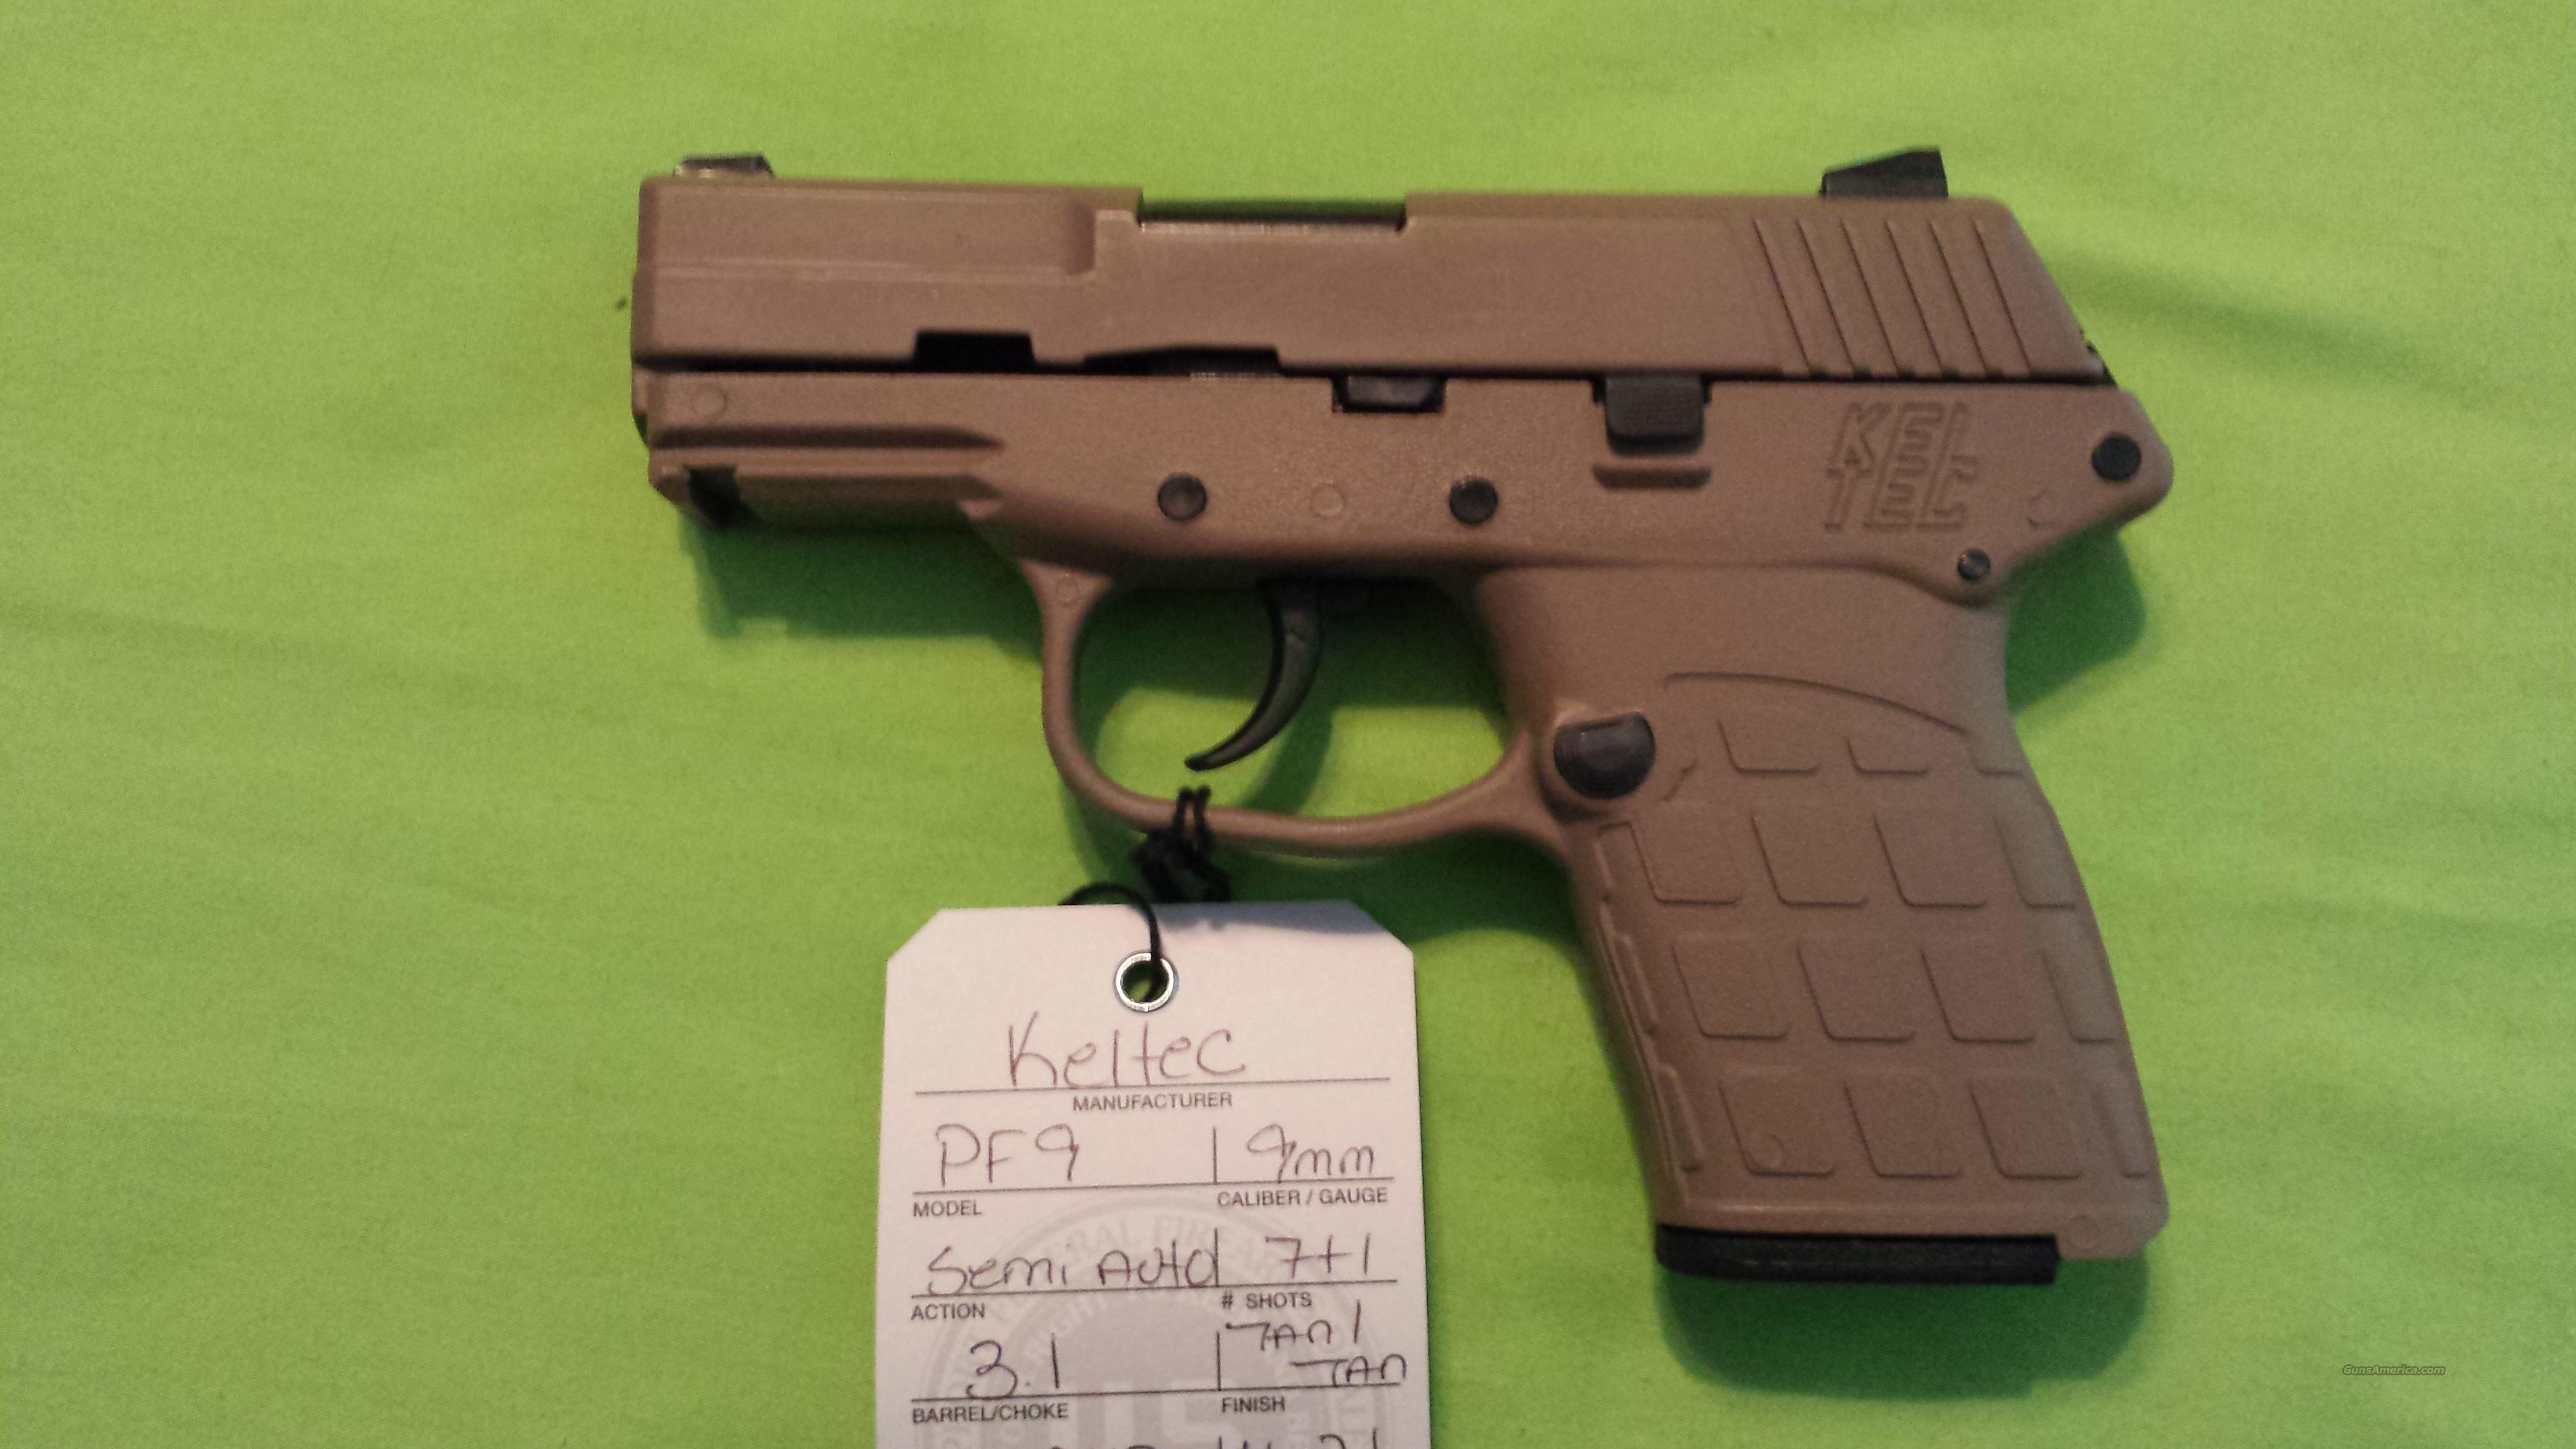 "KELTEC PF 9 PF9 9MM 7RD TAN / TAN 3.1"" BARREL  Guns > Pistols > Kel-Tec Pistols > Pocket Pistol Type"